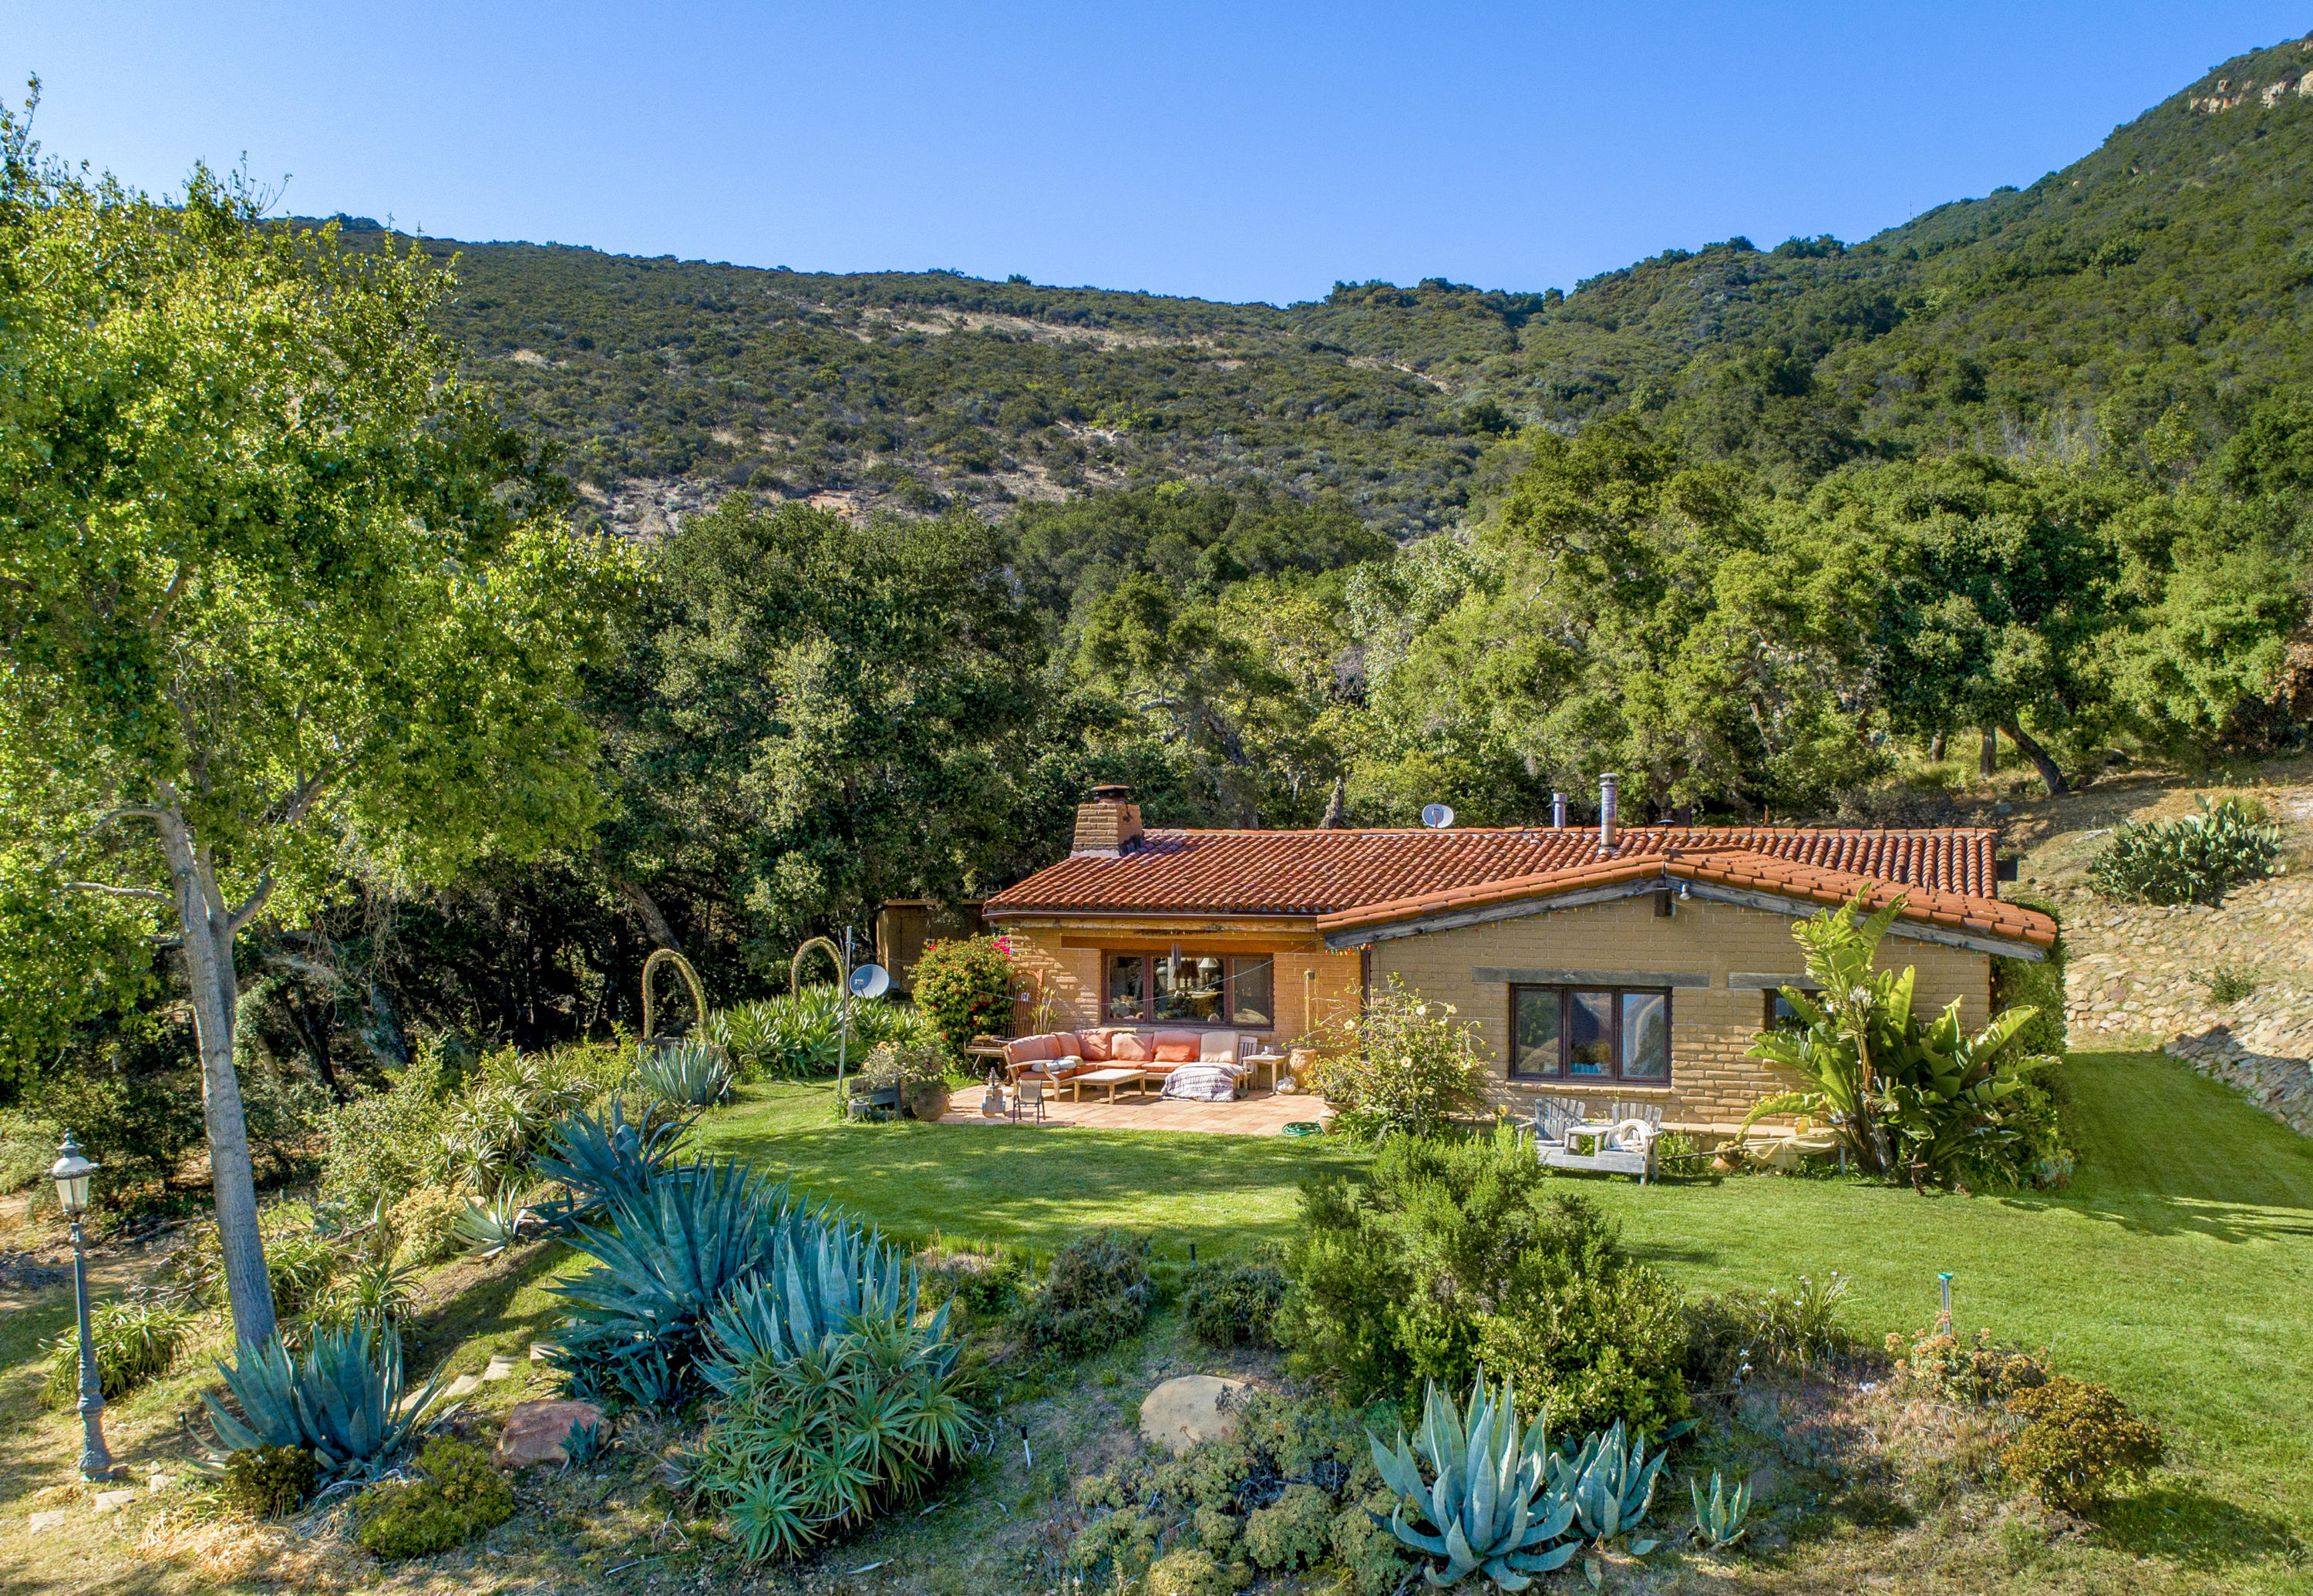 2125 Refugio Rd - Santa Barbara, California